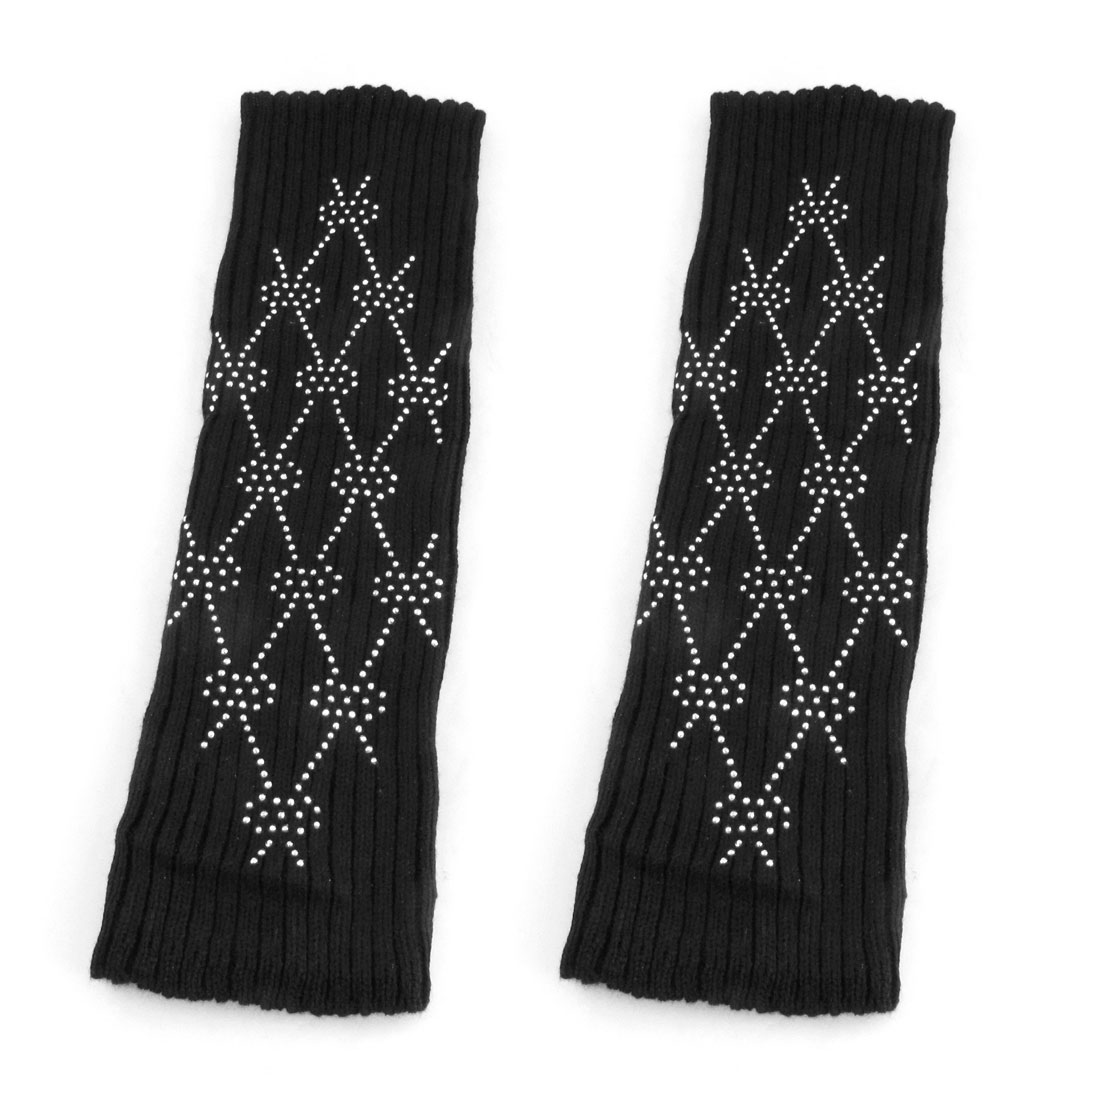 Women Rhinestone Rhombus Pattern Black Knitted Knee High Leg Warmers Pair